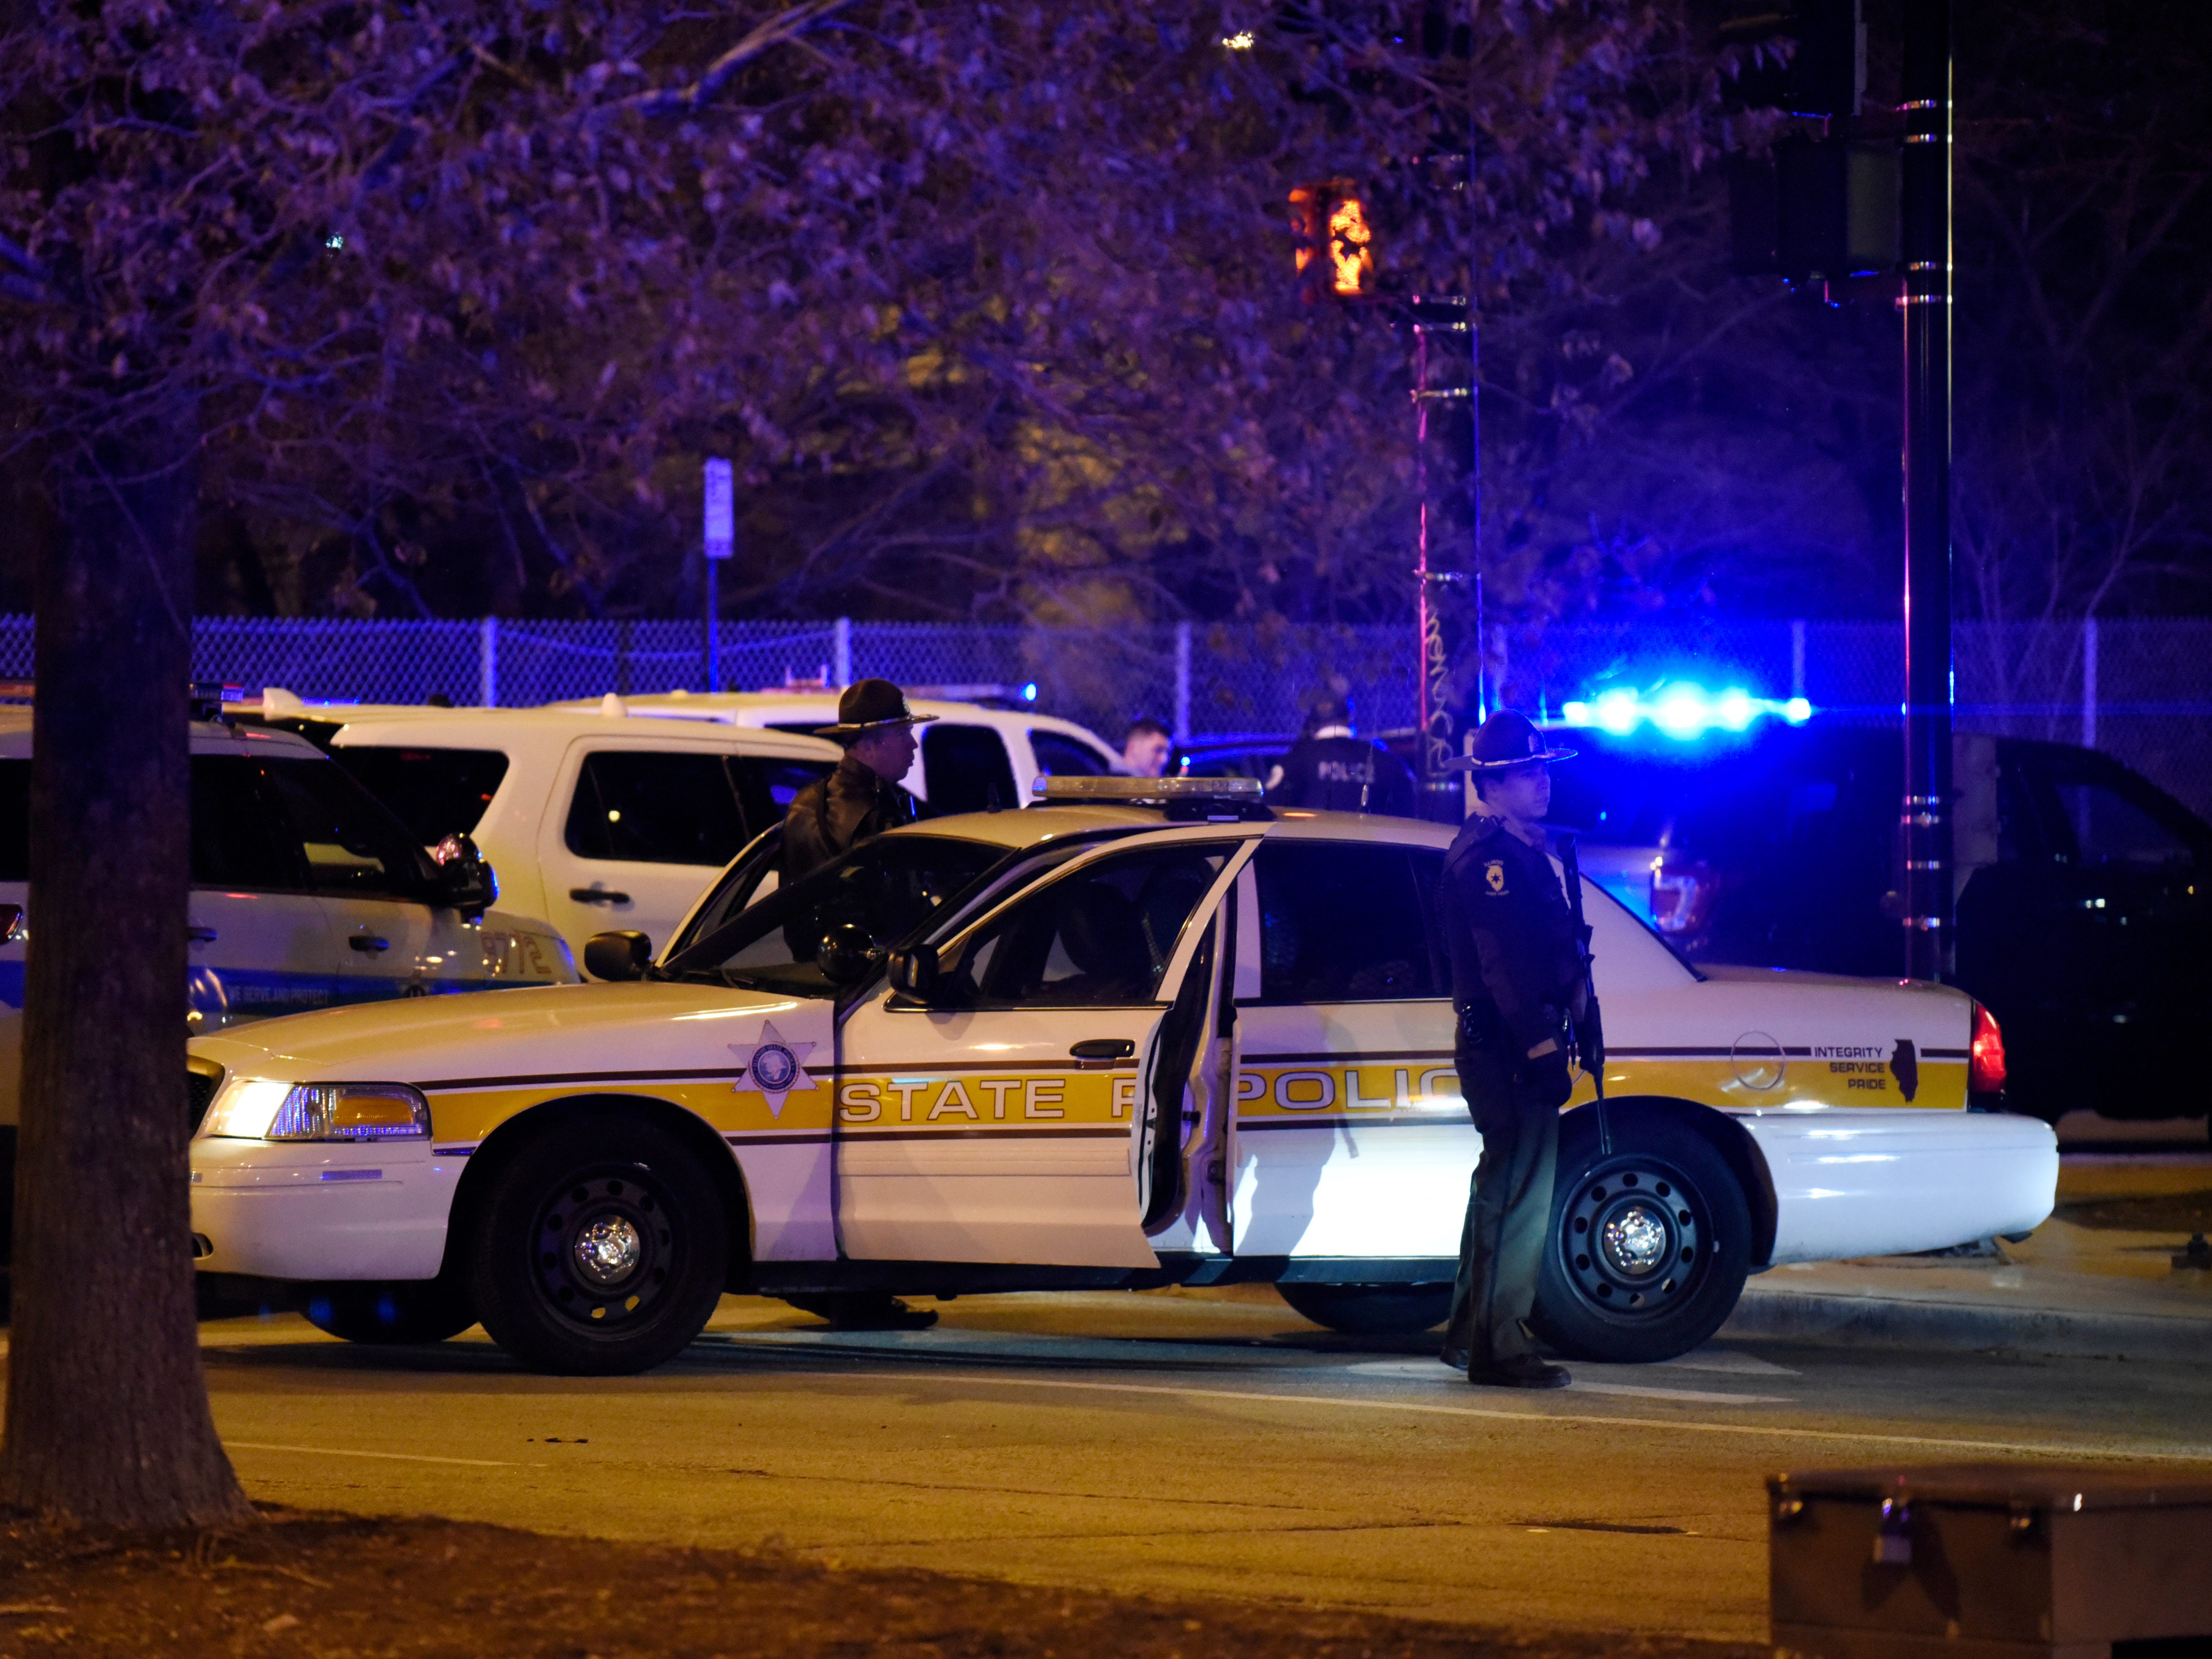 Chicago Police work the scene after a gunman opened fire at Mercy Hospital, on Nov. 19, 2018, in Chicago.